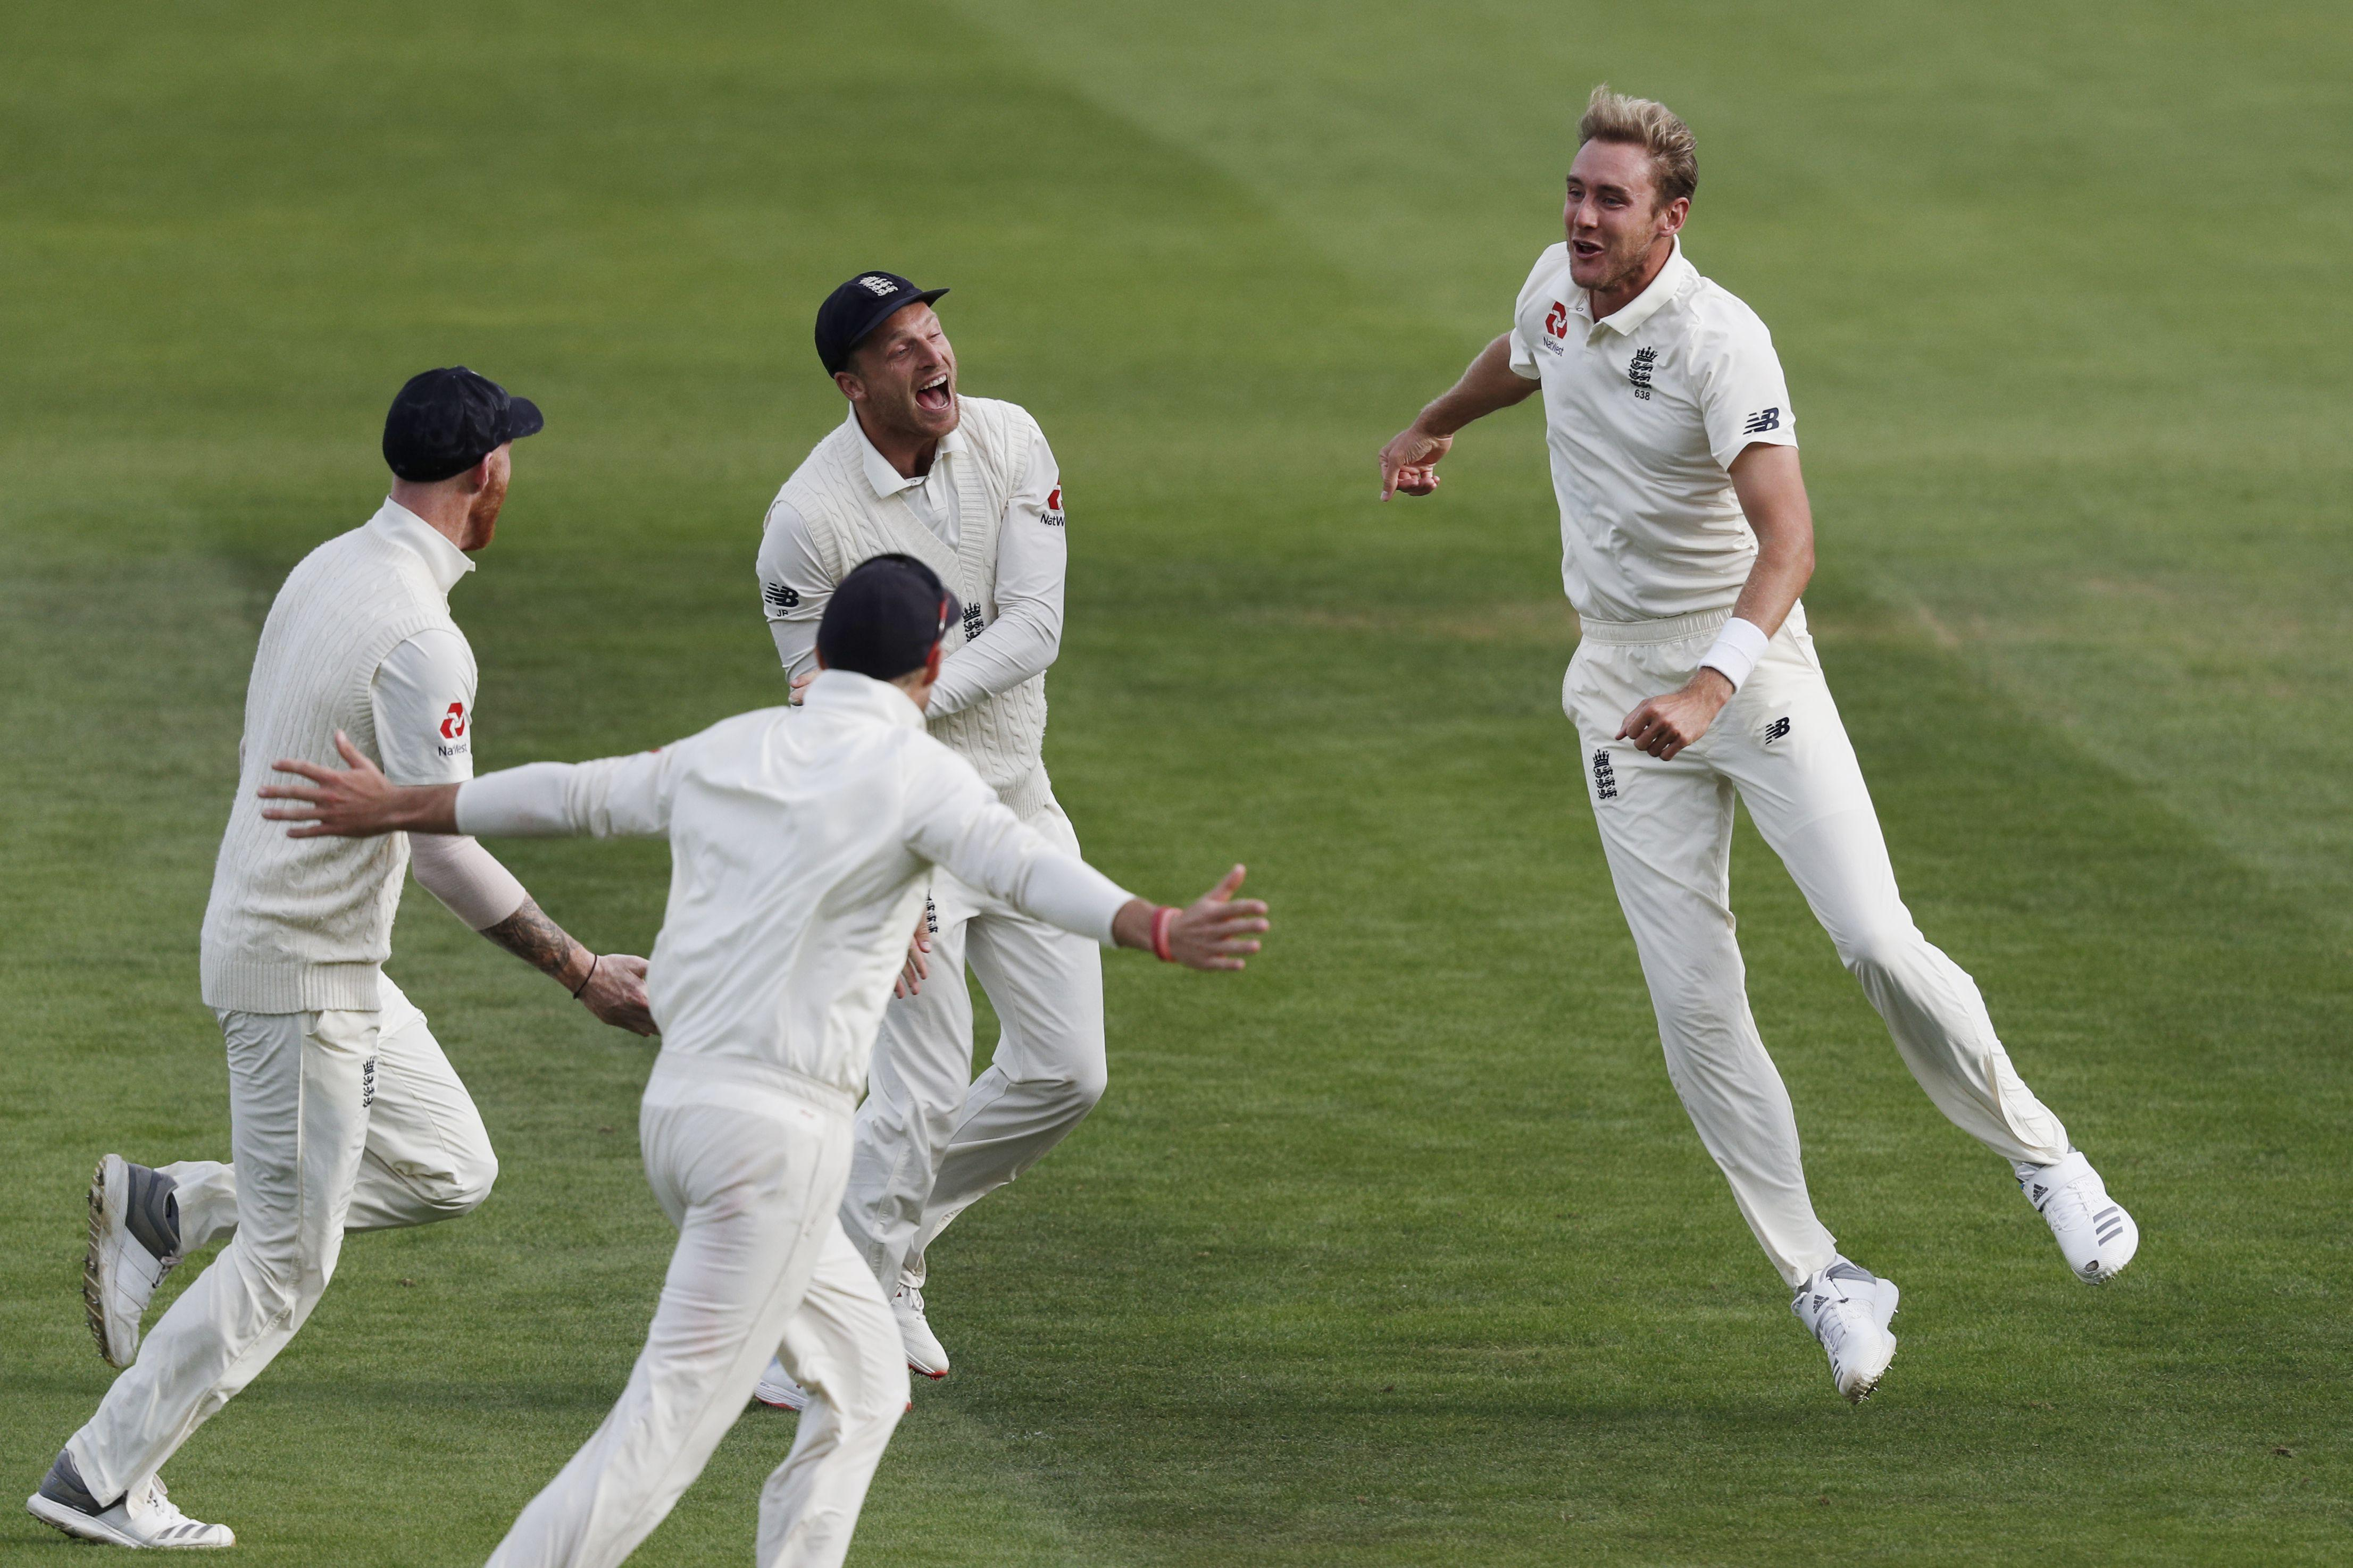 Stuart Broad celebrates the wicket of India captain Virat Kohli for a duck, playing one well outside of leg stump